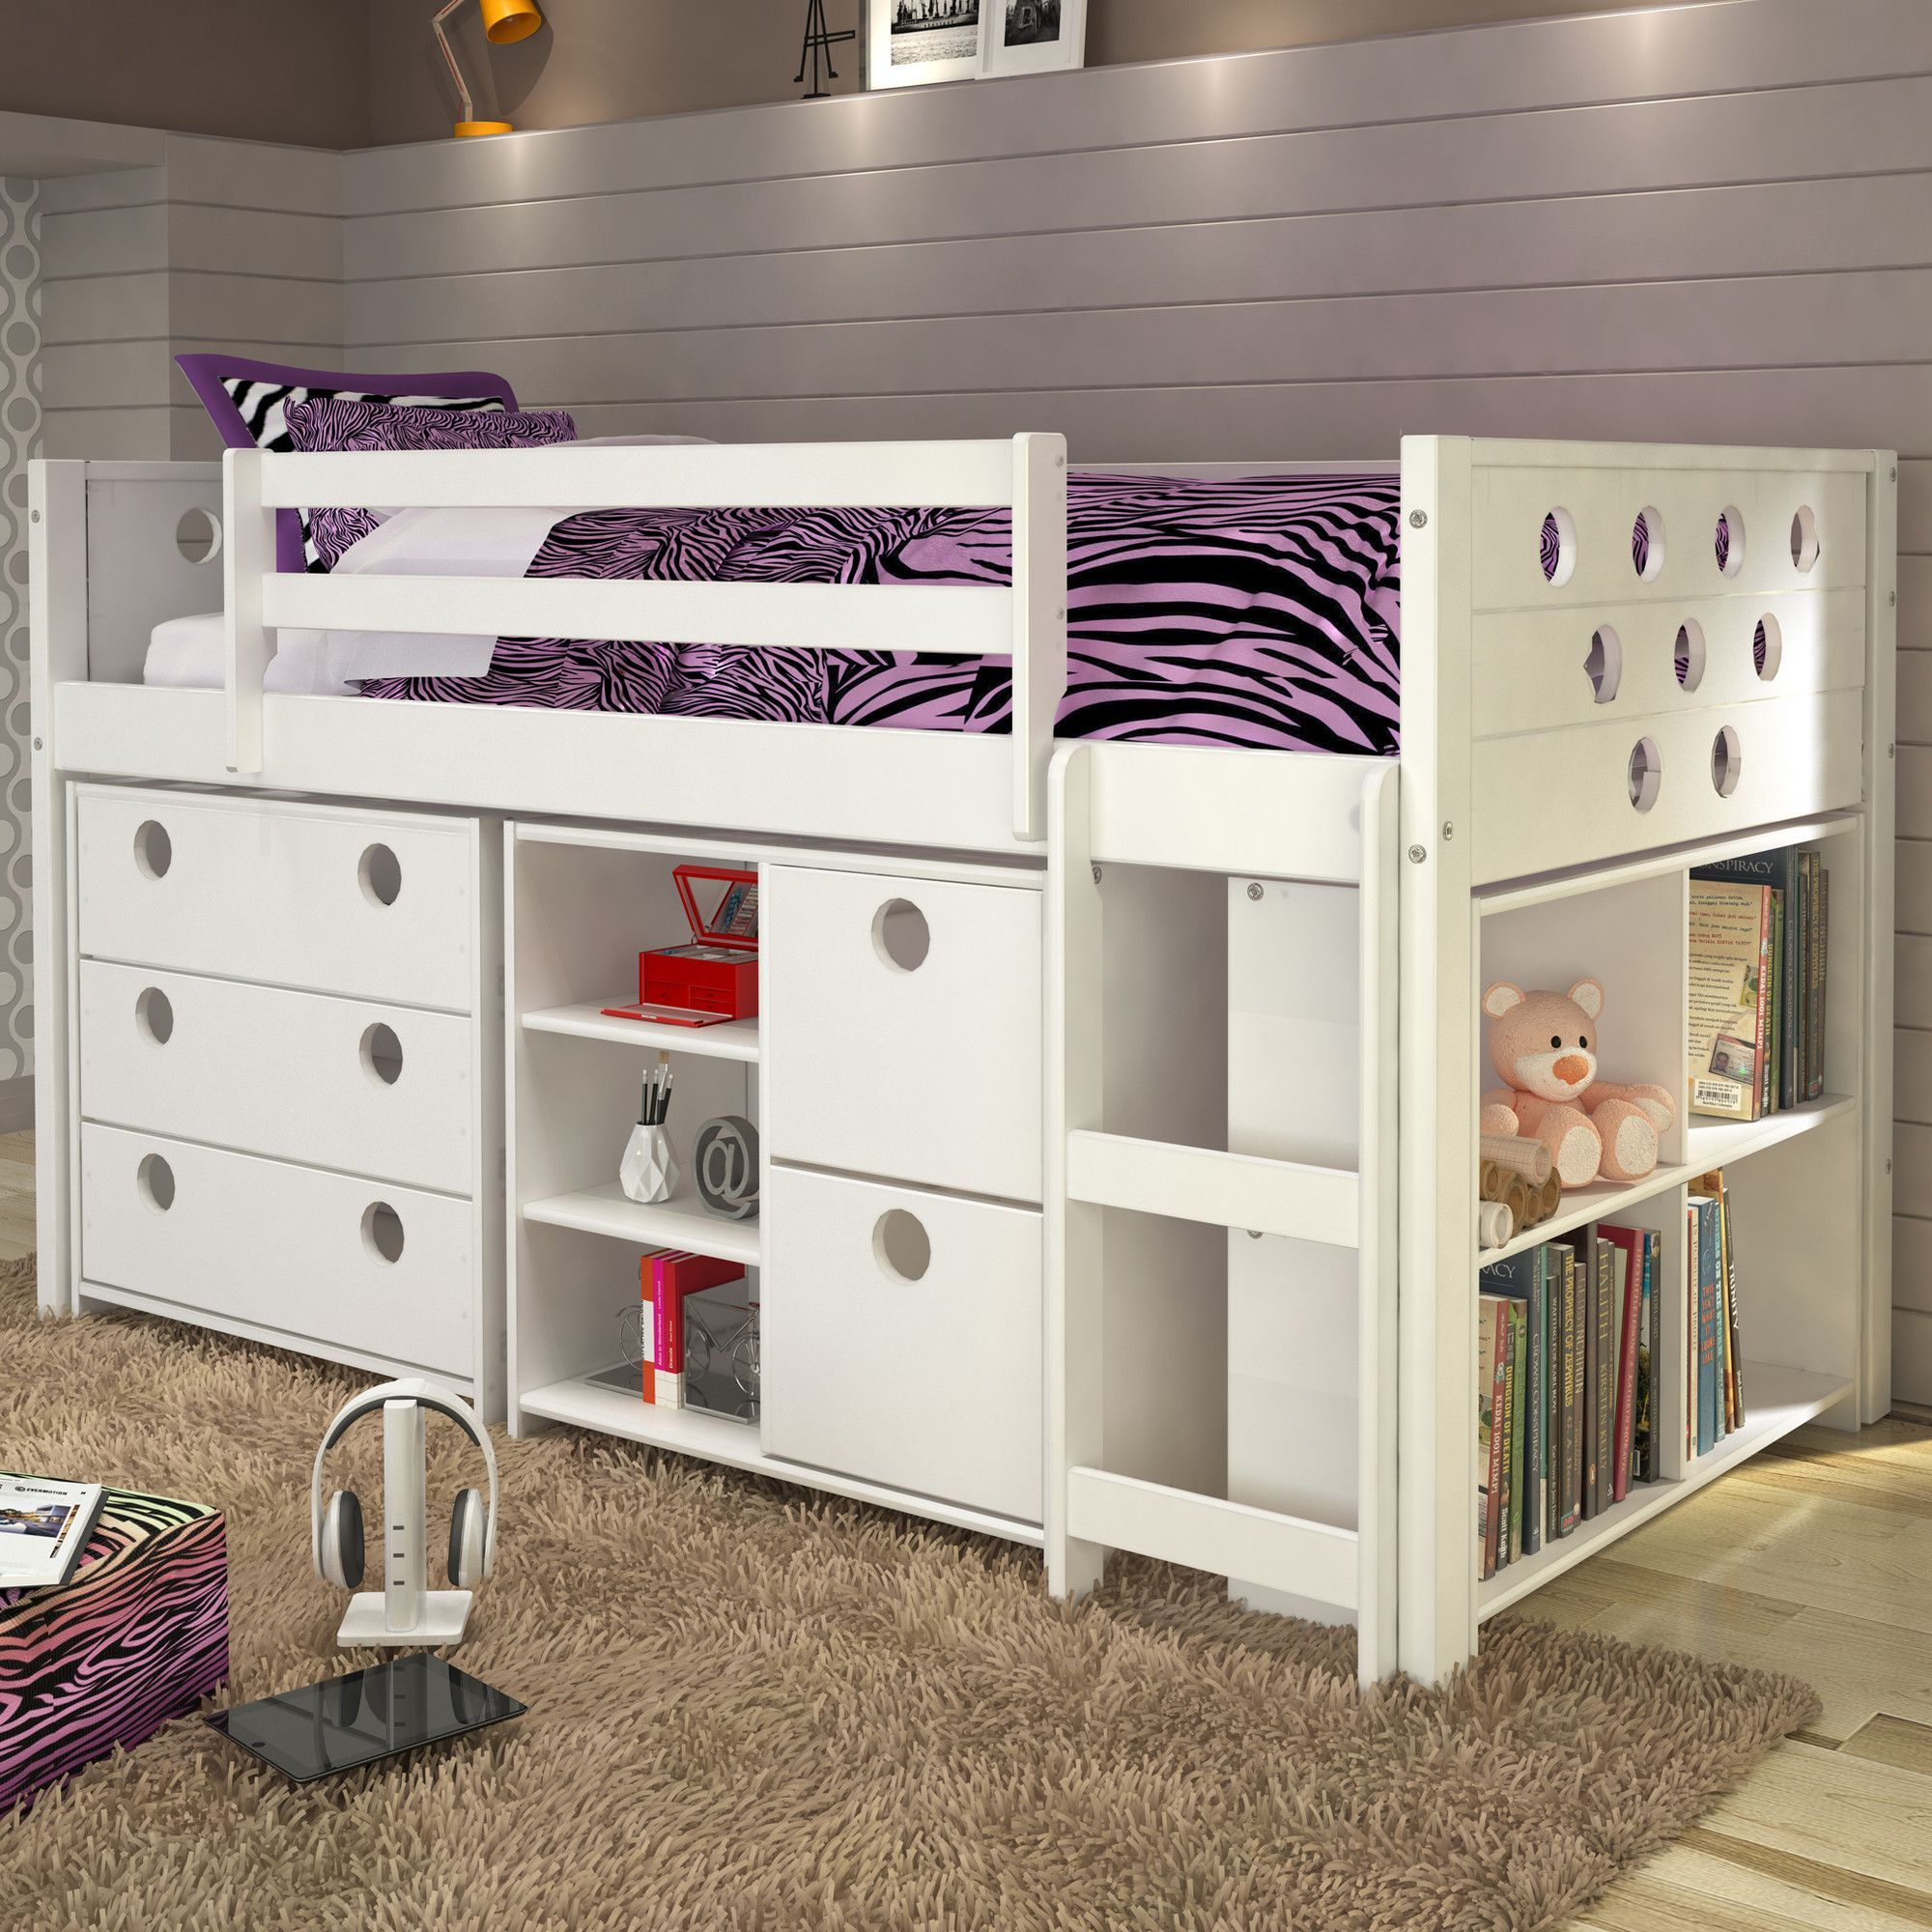 Loft captains bed twin  Shop Wayfair for A Zillion Things Home across all styles and budgets